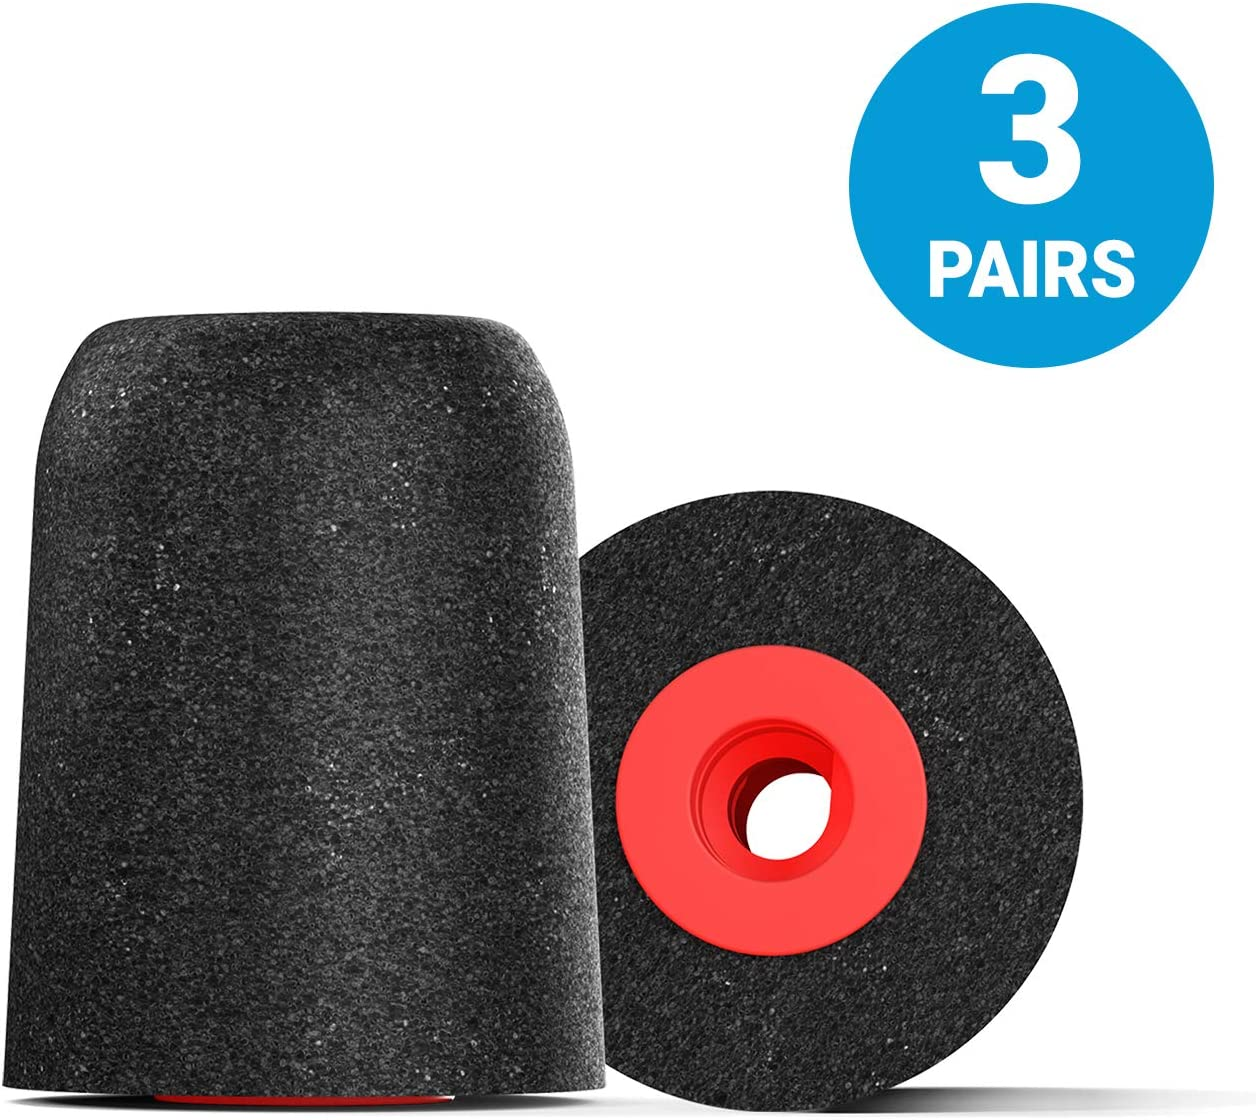 Comply Professional Noise Isolating Earphone Tips for NuForce, ISOtunes PRO, Q-Jays, Etymotic Research, Westone, Shure & More P-Series Memory Foam Replacement Earbud Tips (Medium, 3-pairs)